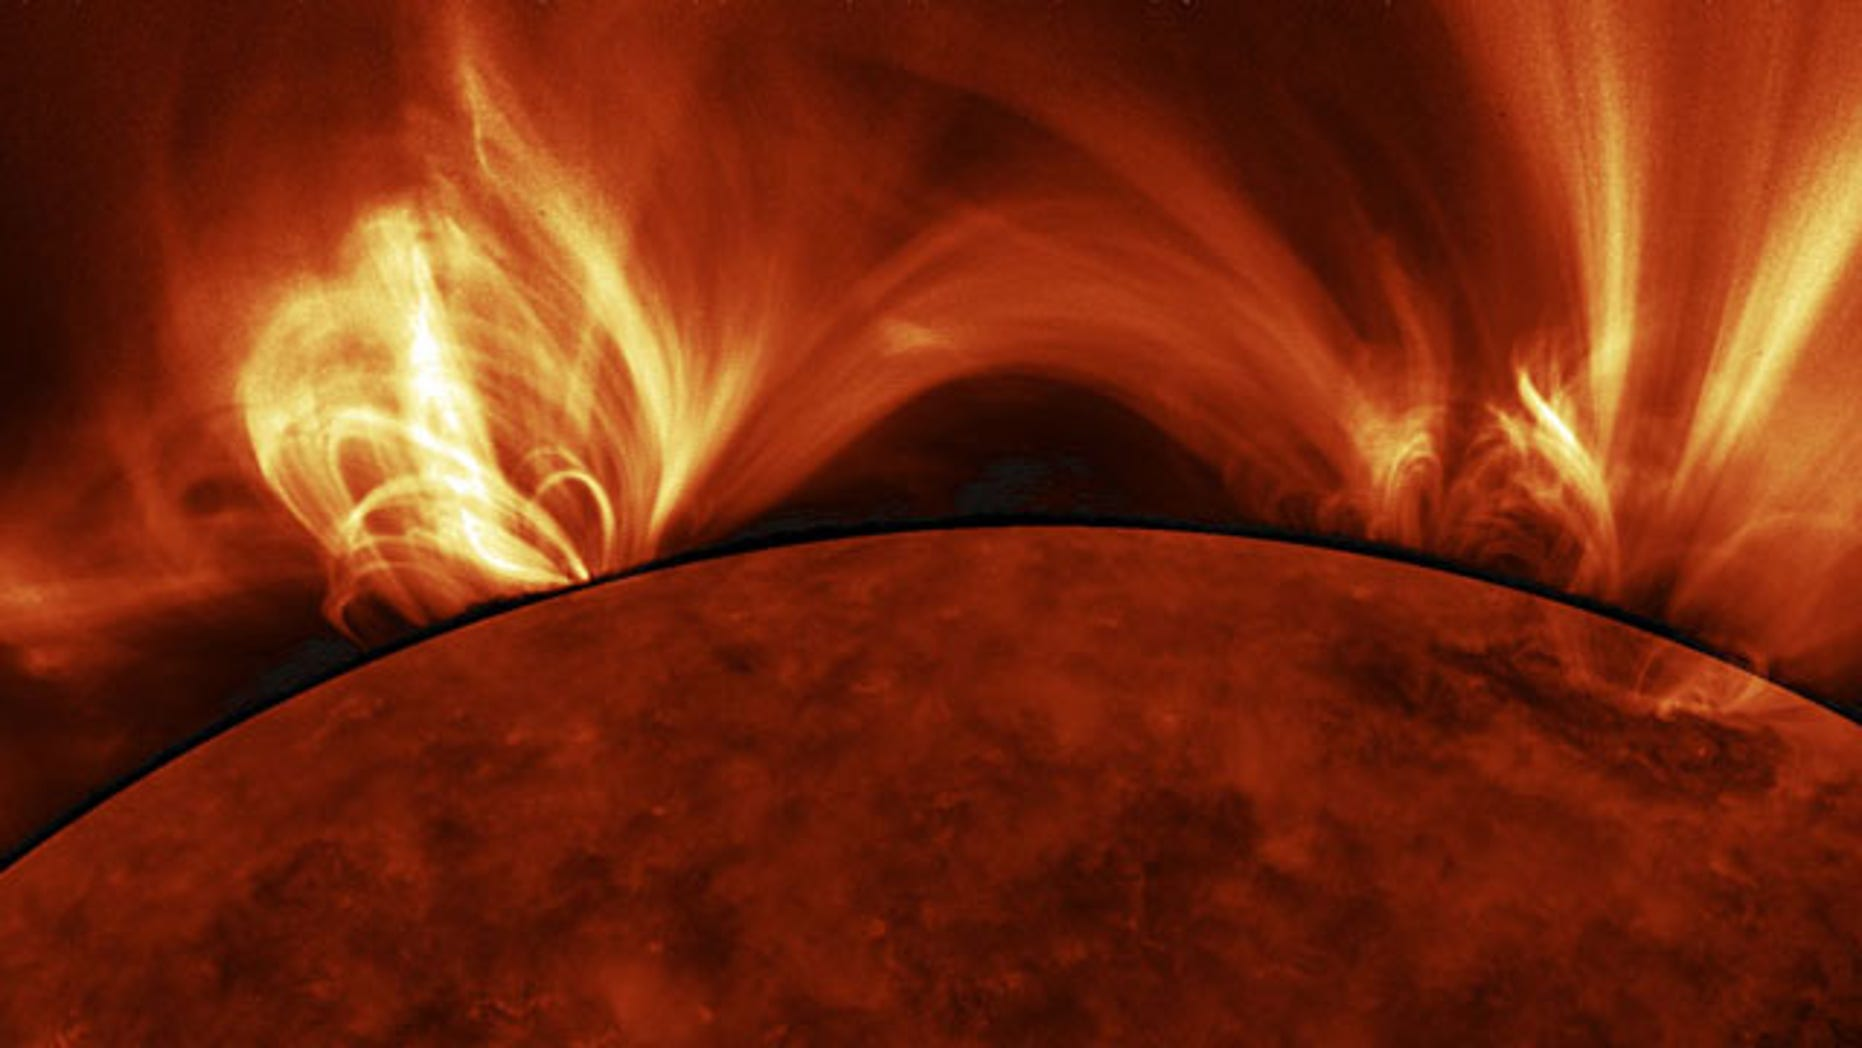 This zoomed-in image shows how the Sun's magnetic field shapes hot coronal plasma. Photos like this highlight the ever-changing connections between gas captured by the Sun's magnetic field and gas escaping into interplanetary space.